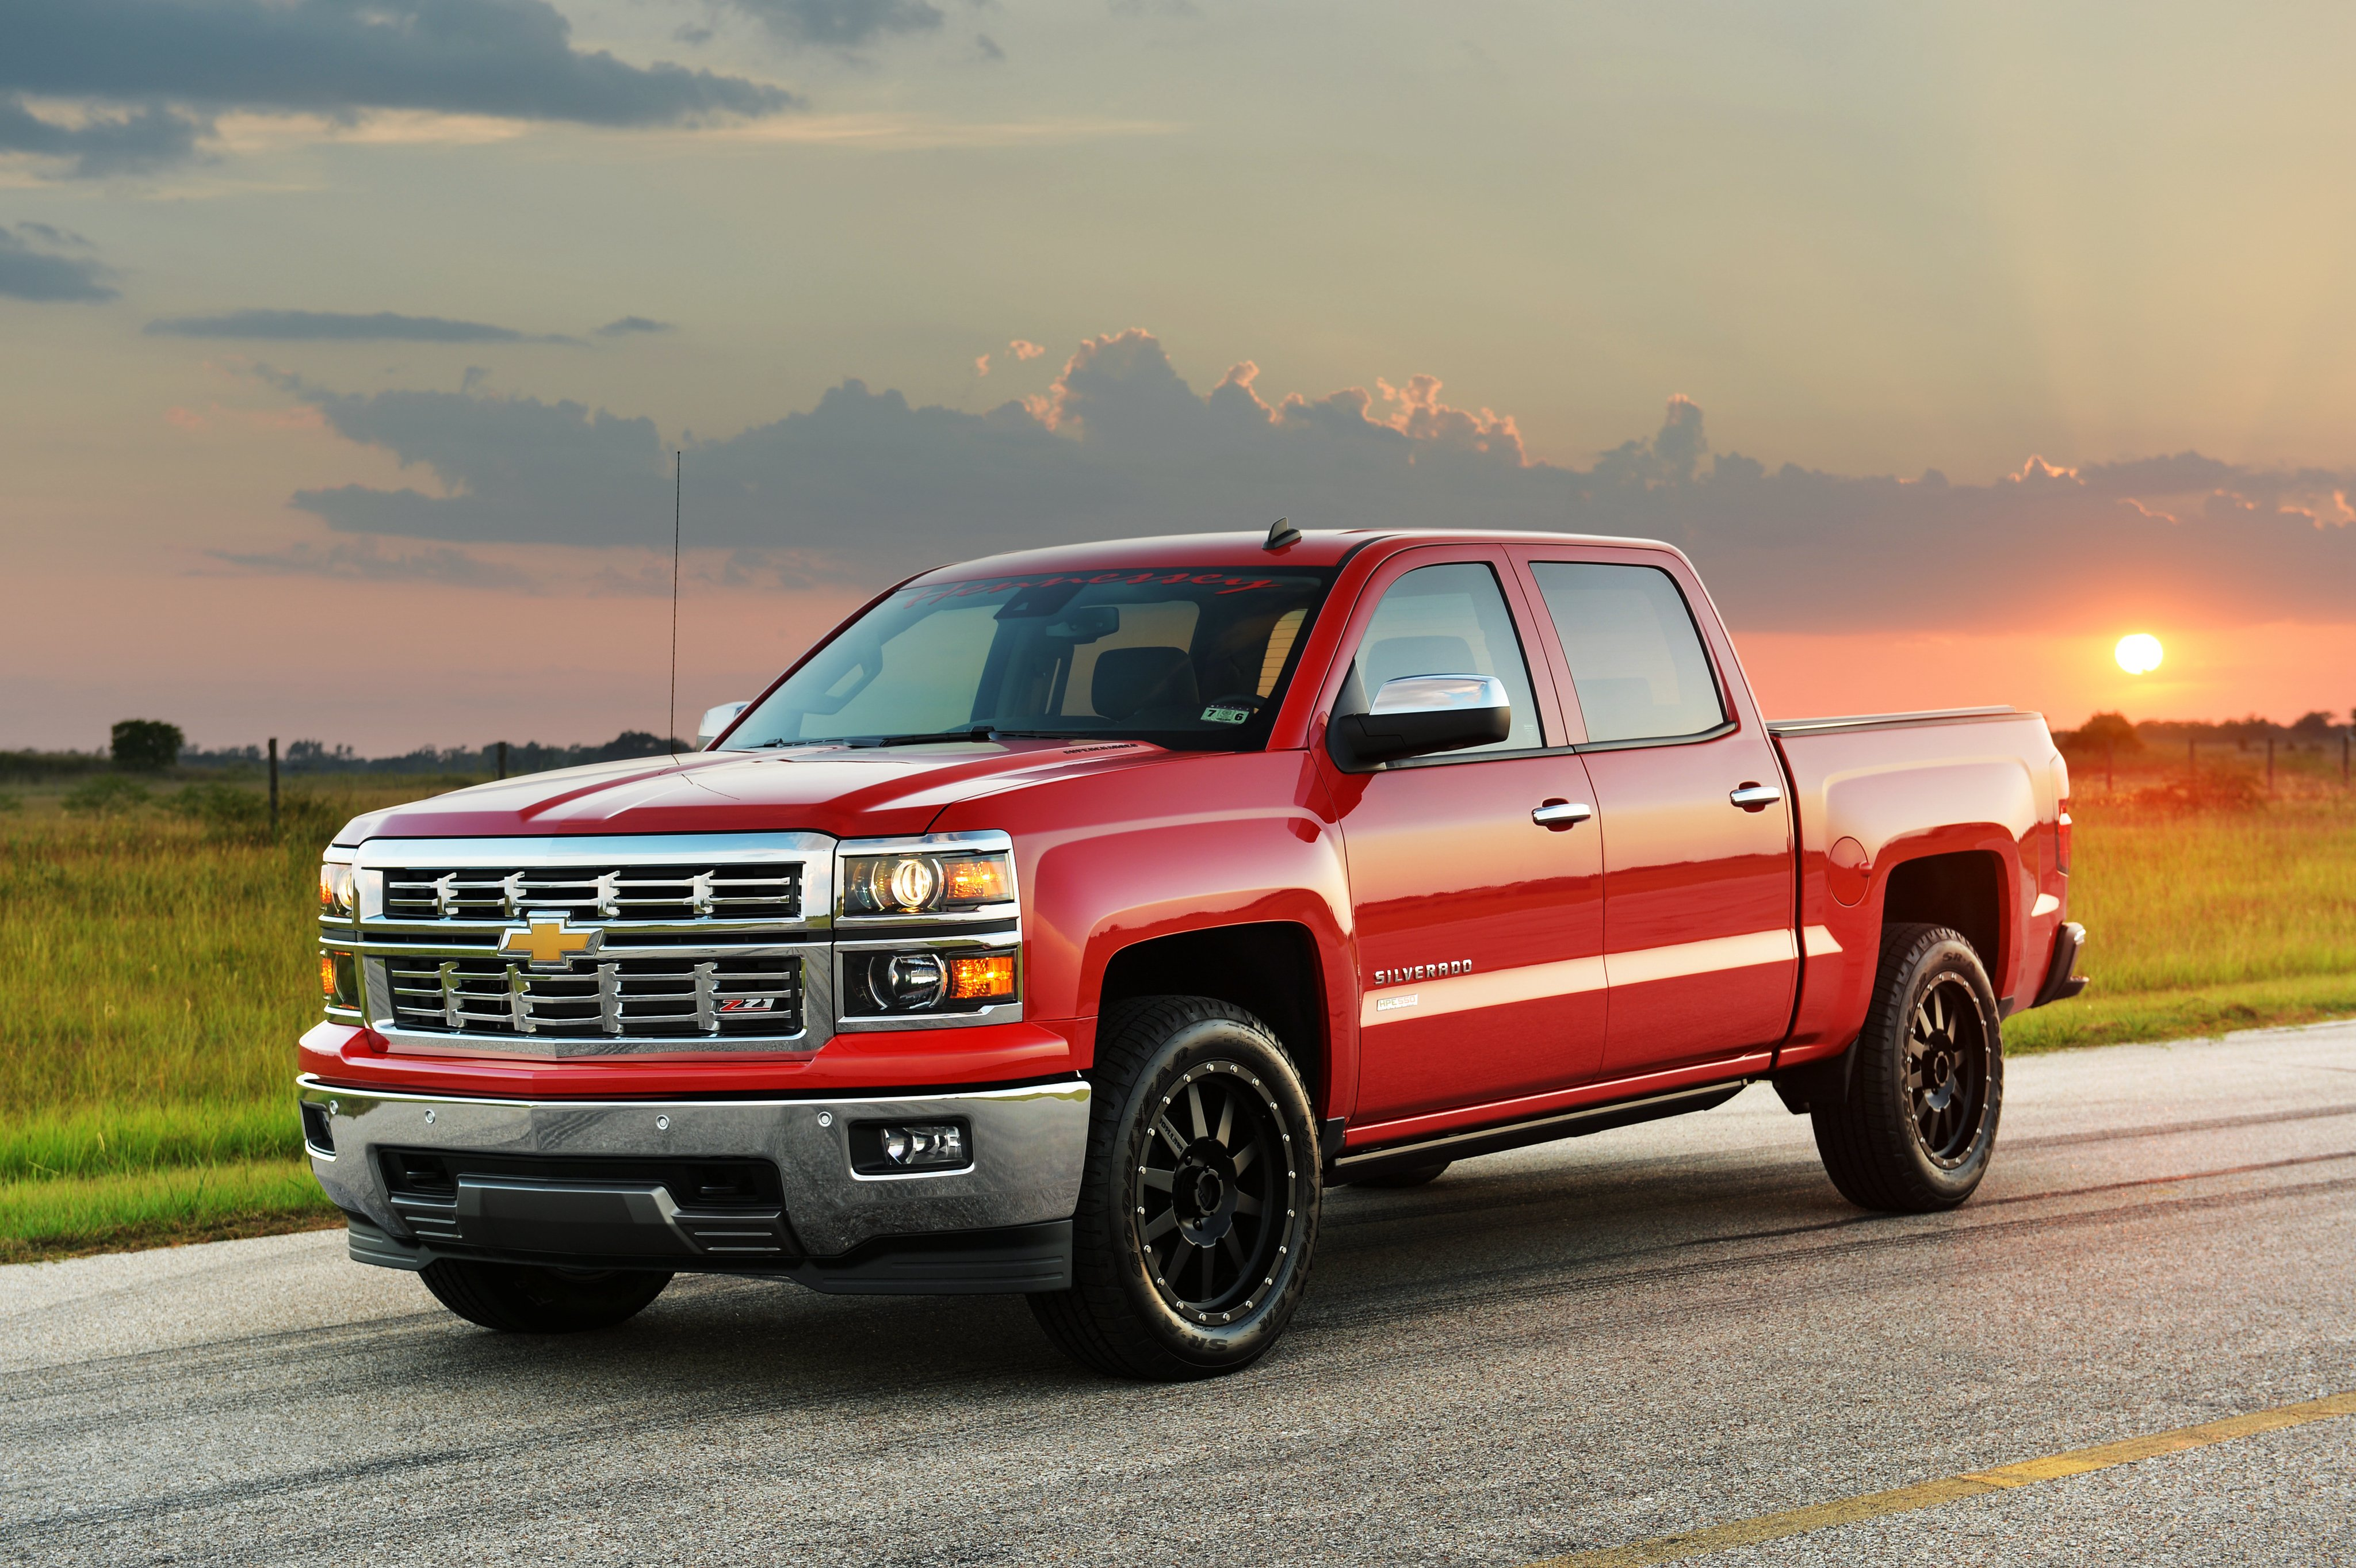 2015 hennessey chevrolet silverado z71 hpe550 pickup muscle tuning wallpaper 4096x2726 461865 wallpaperup